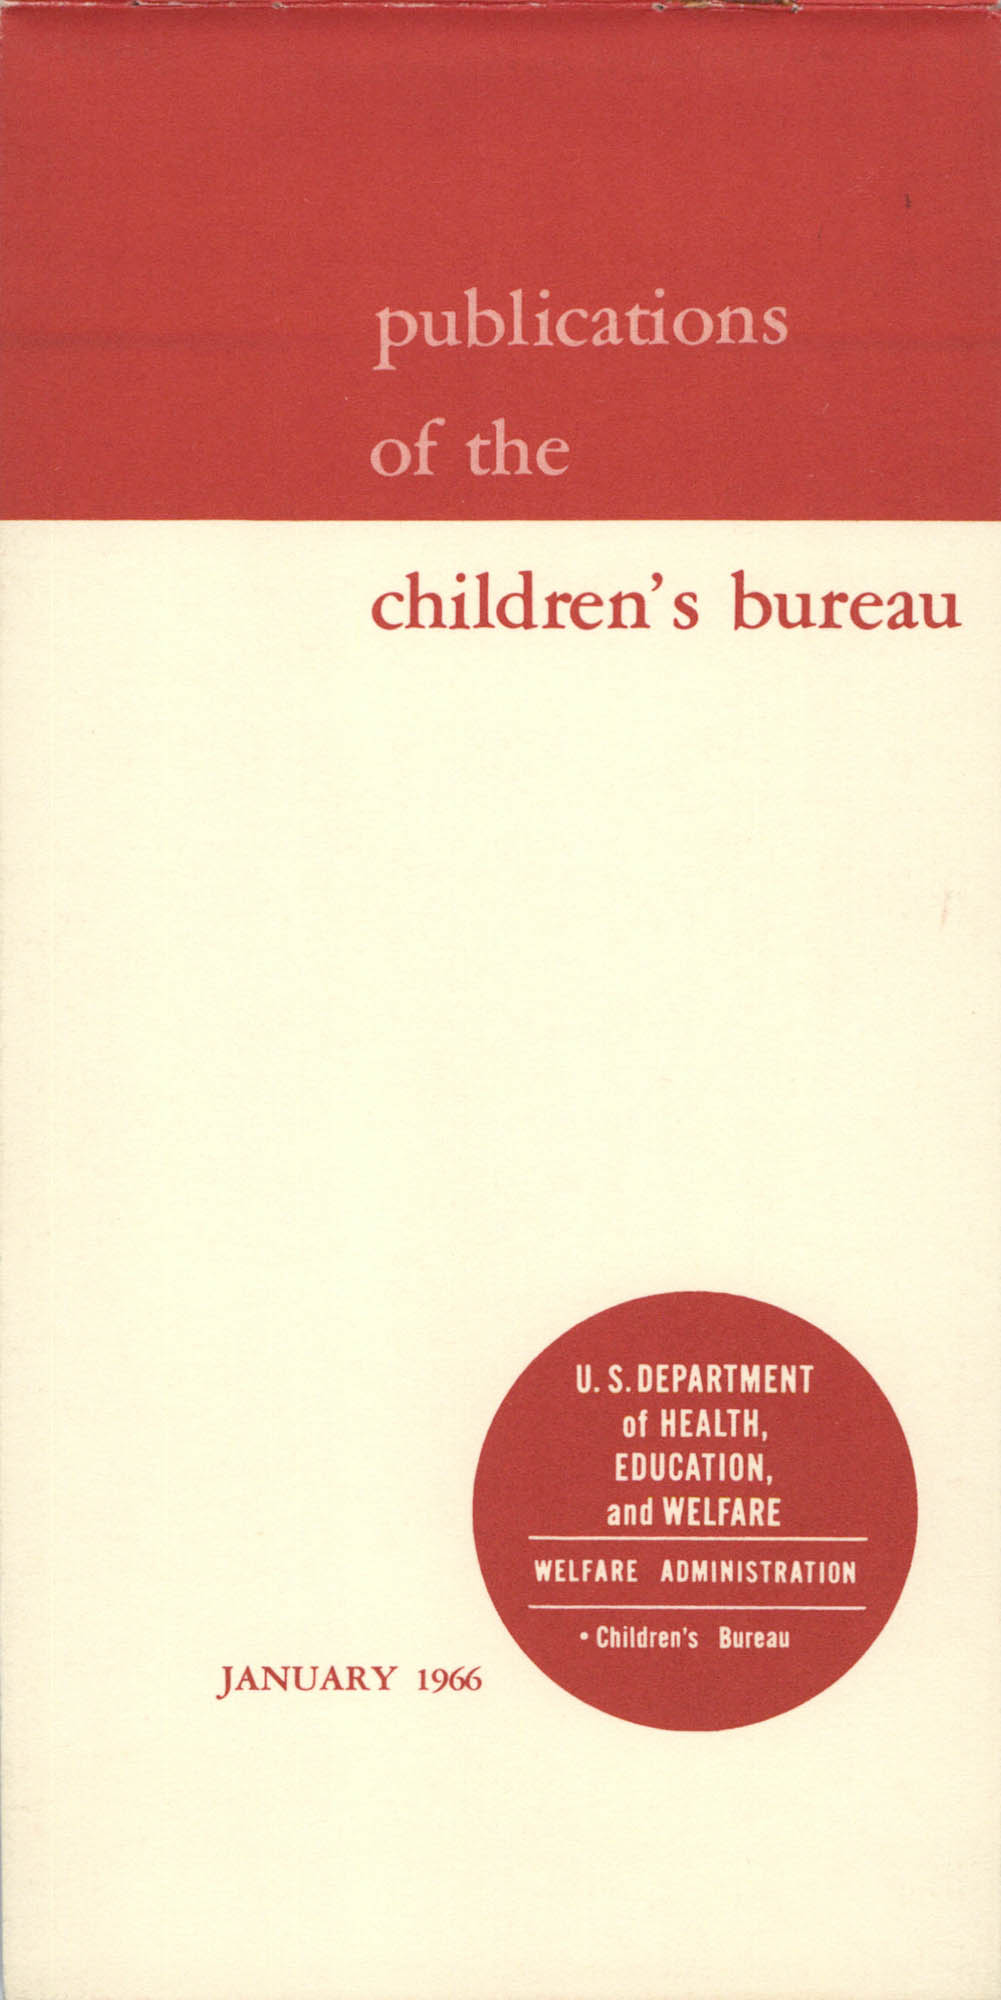 Publications of the Children's Bureau